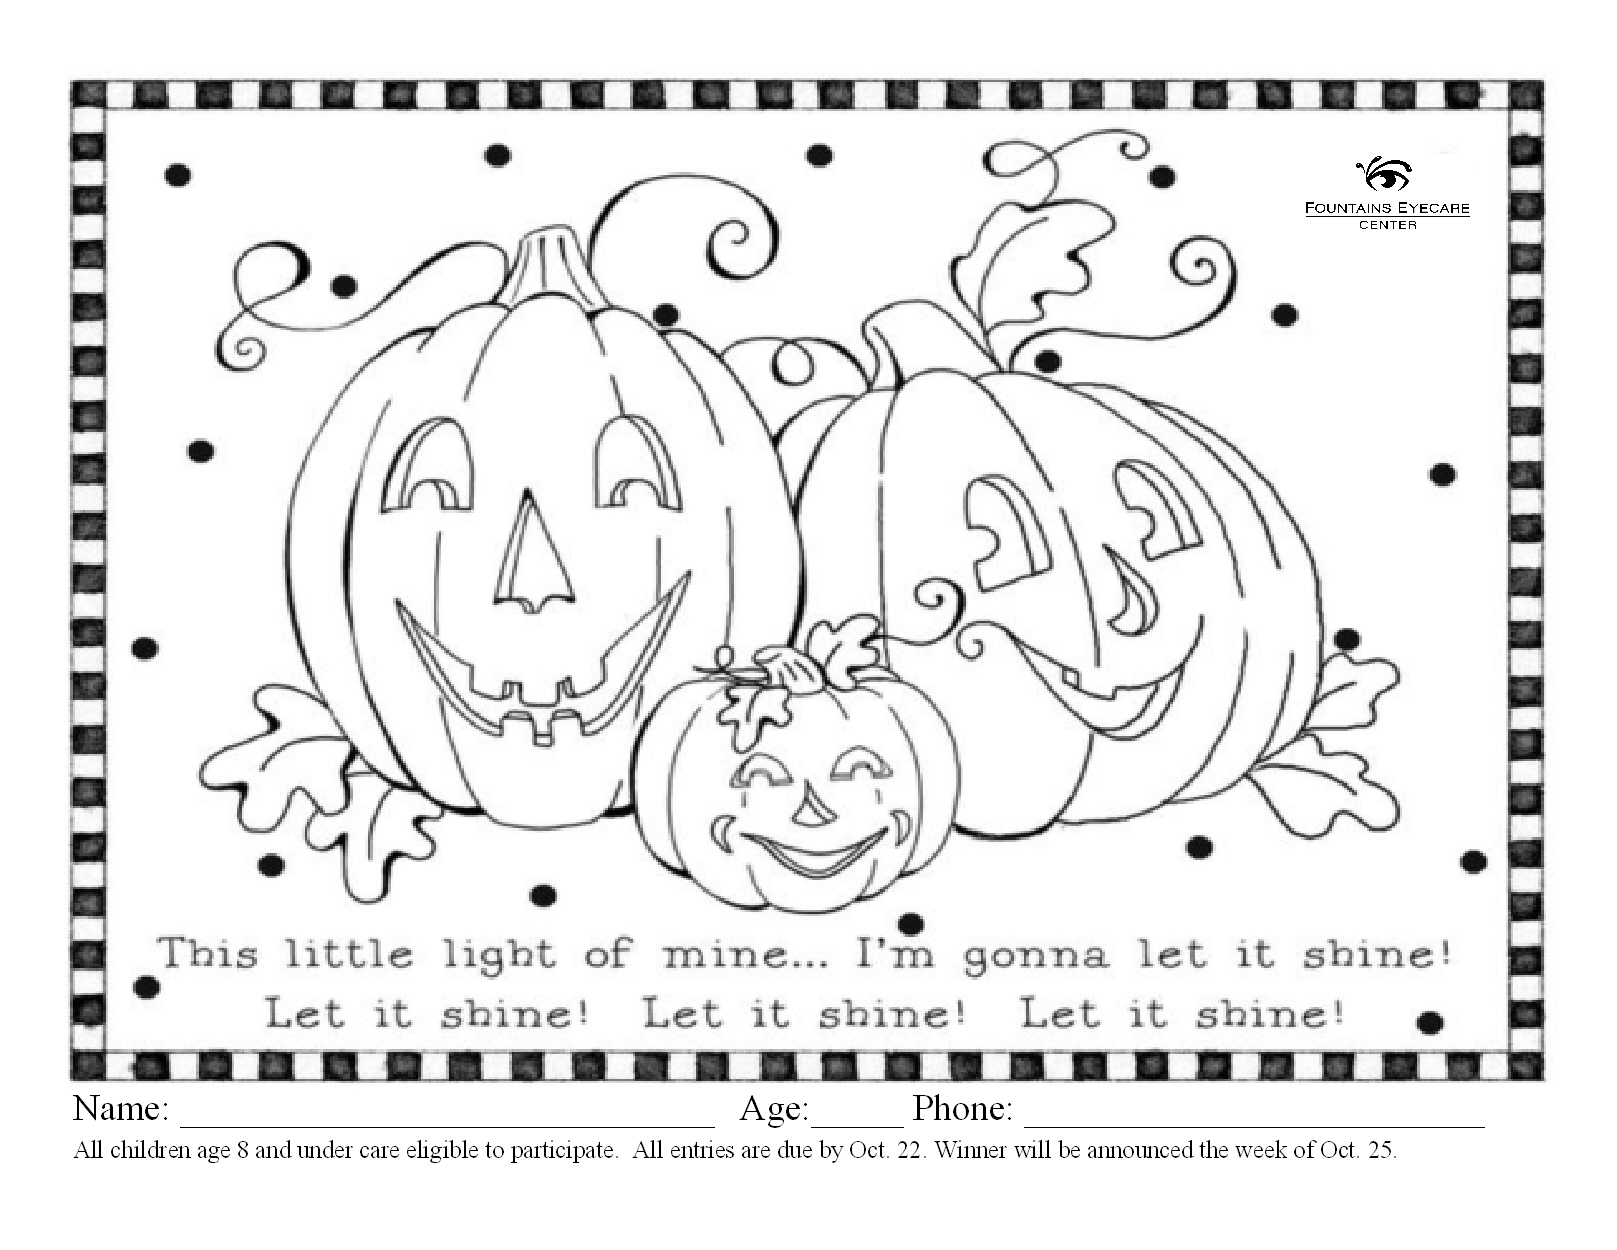 WP images: Kids coloring pages, post 4